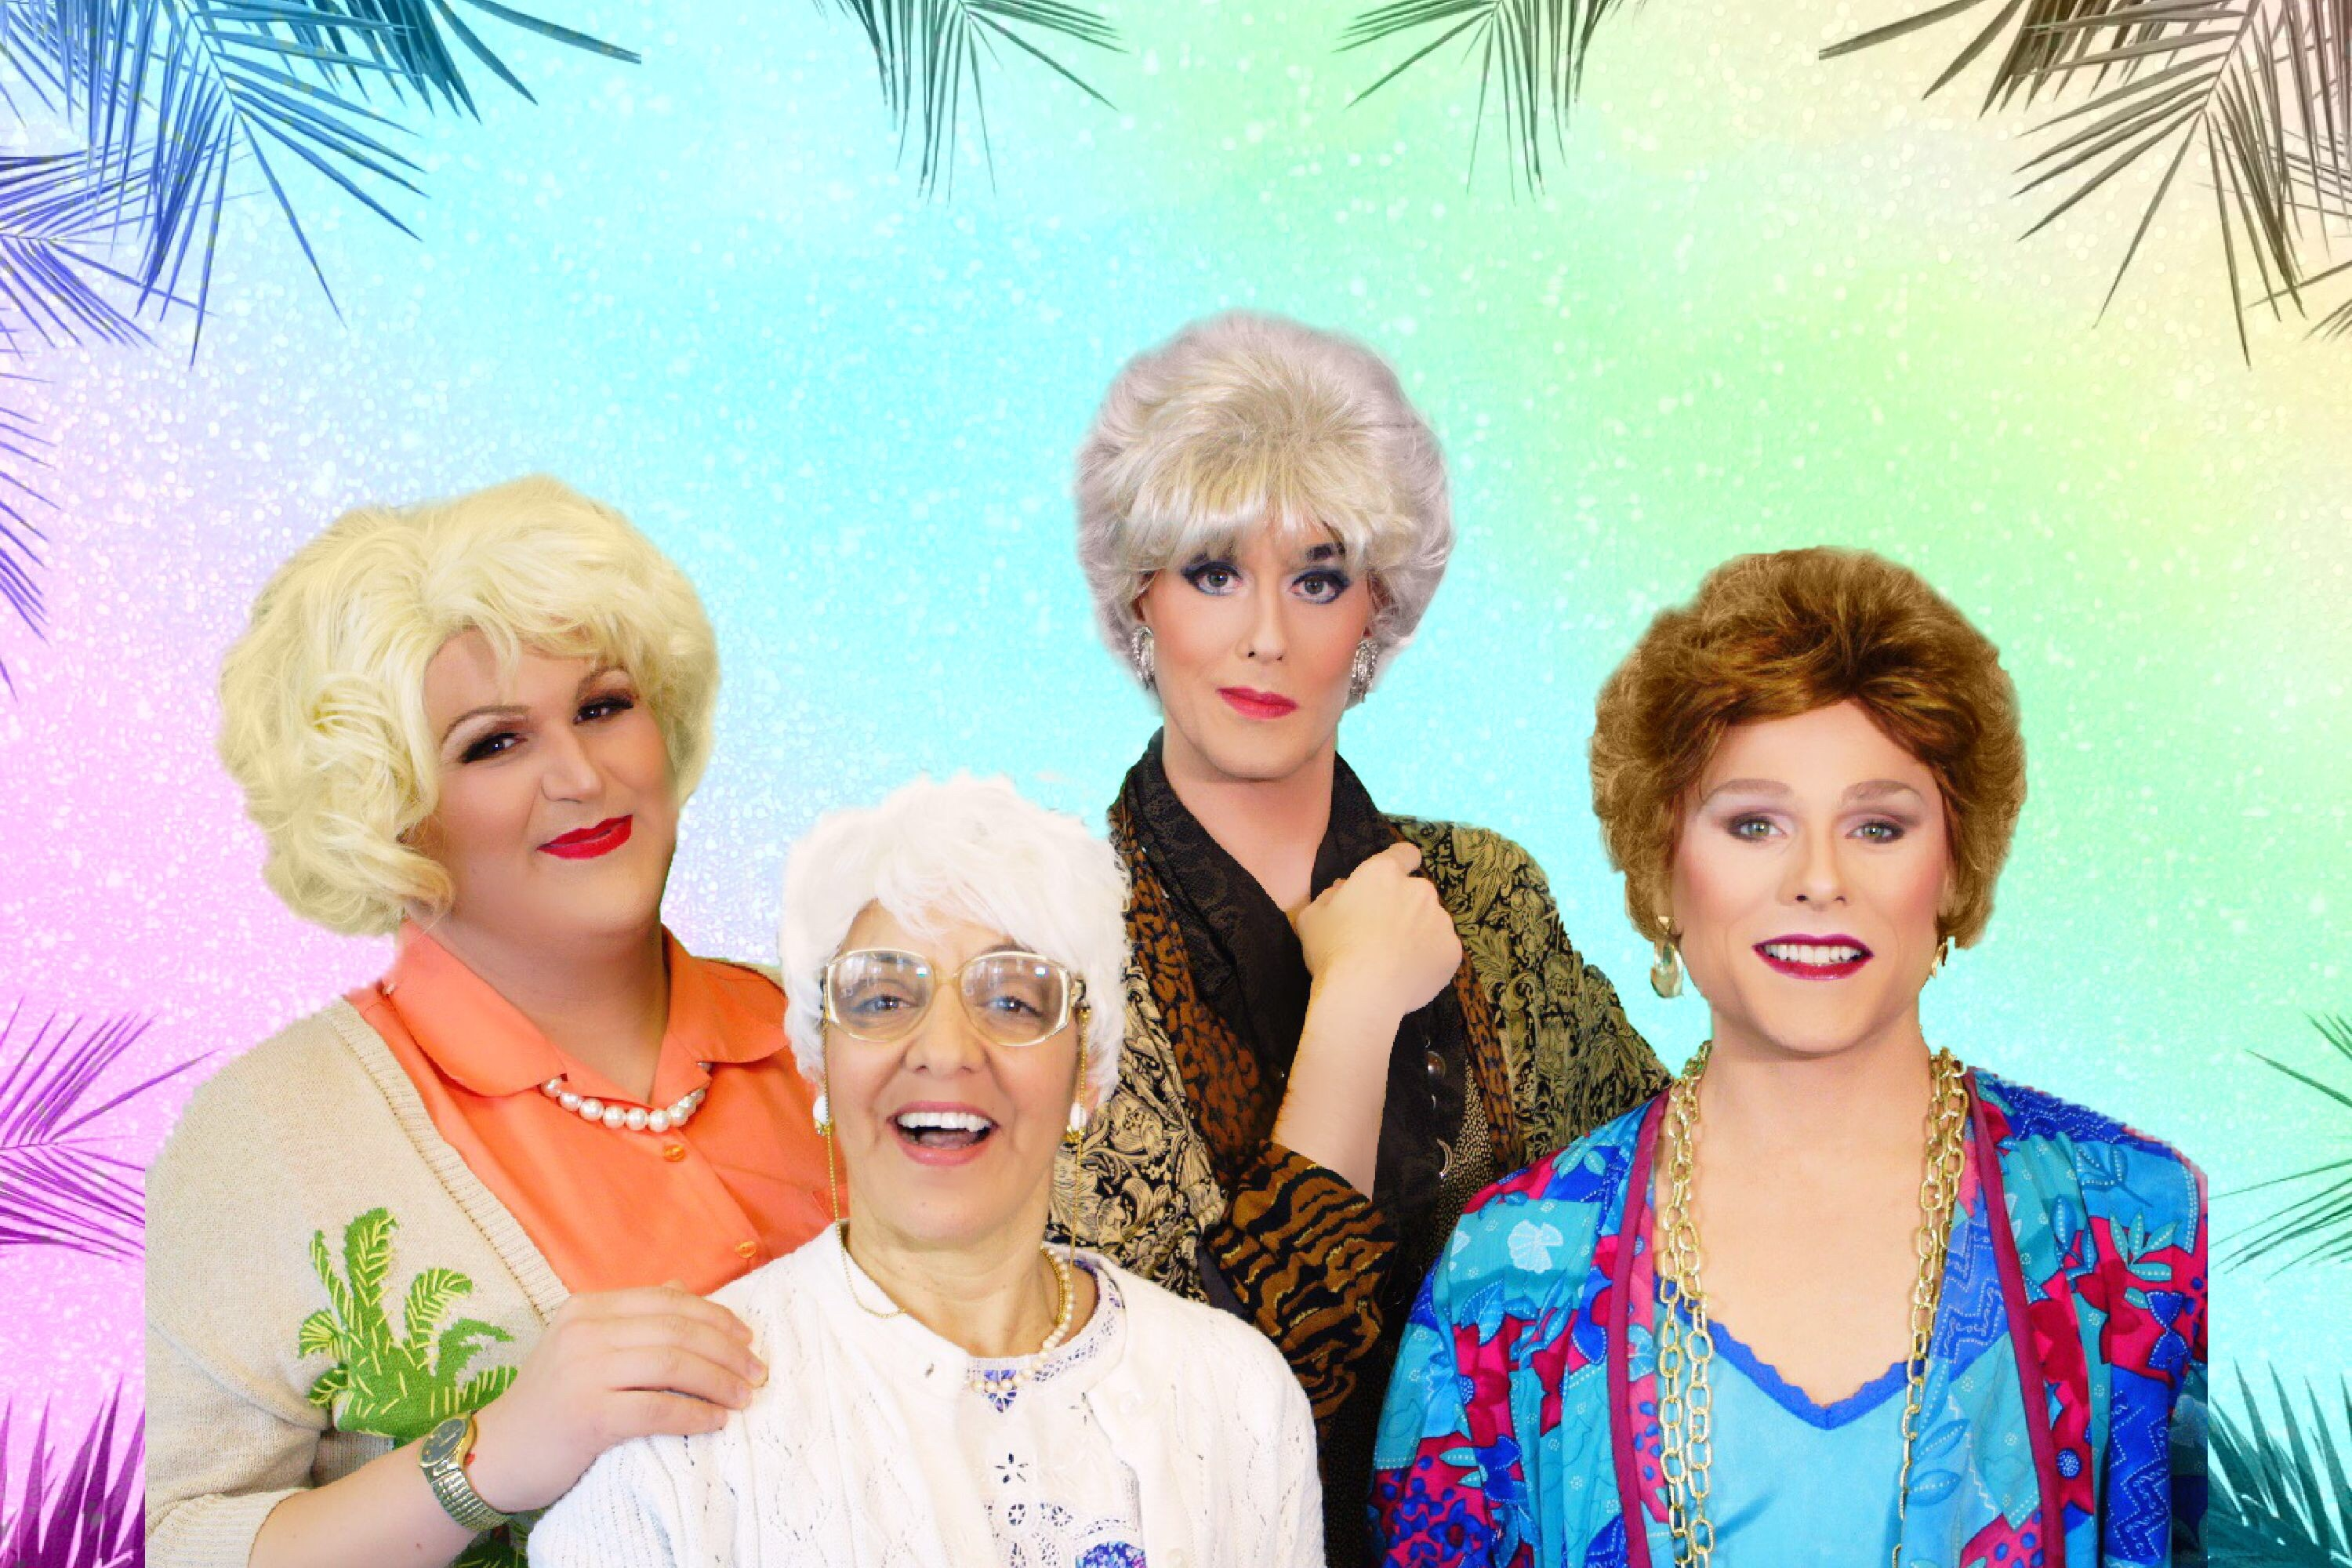 The Golden Girls Musical Parody